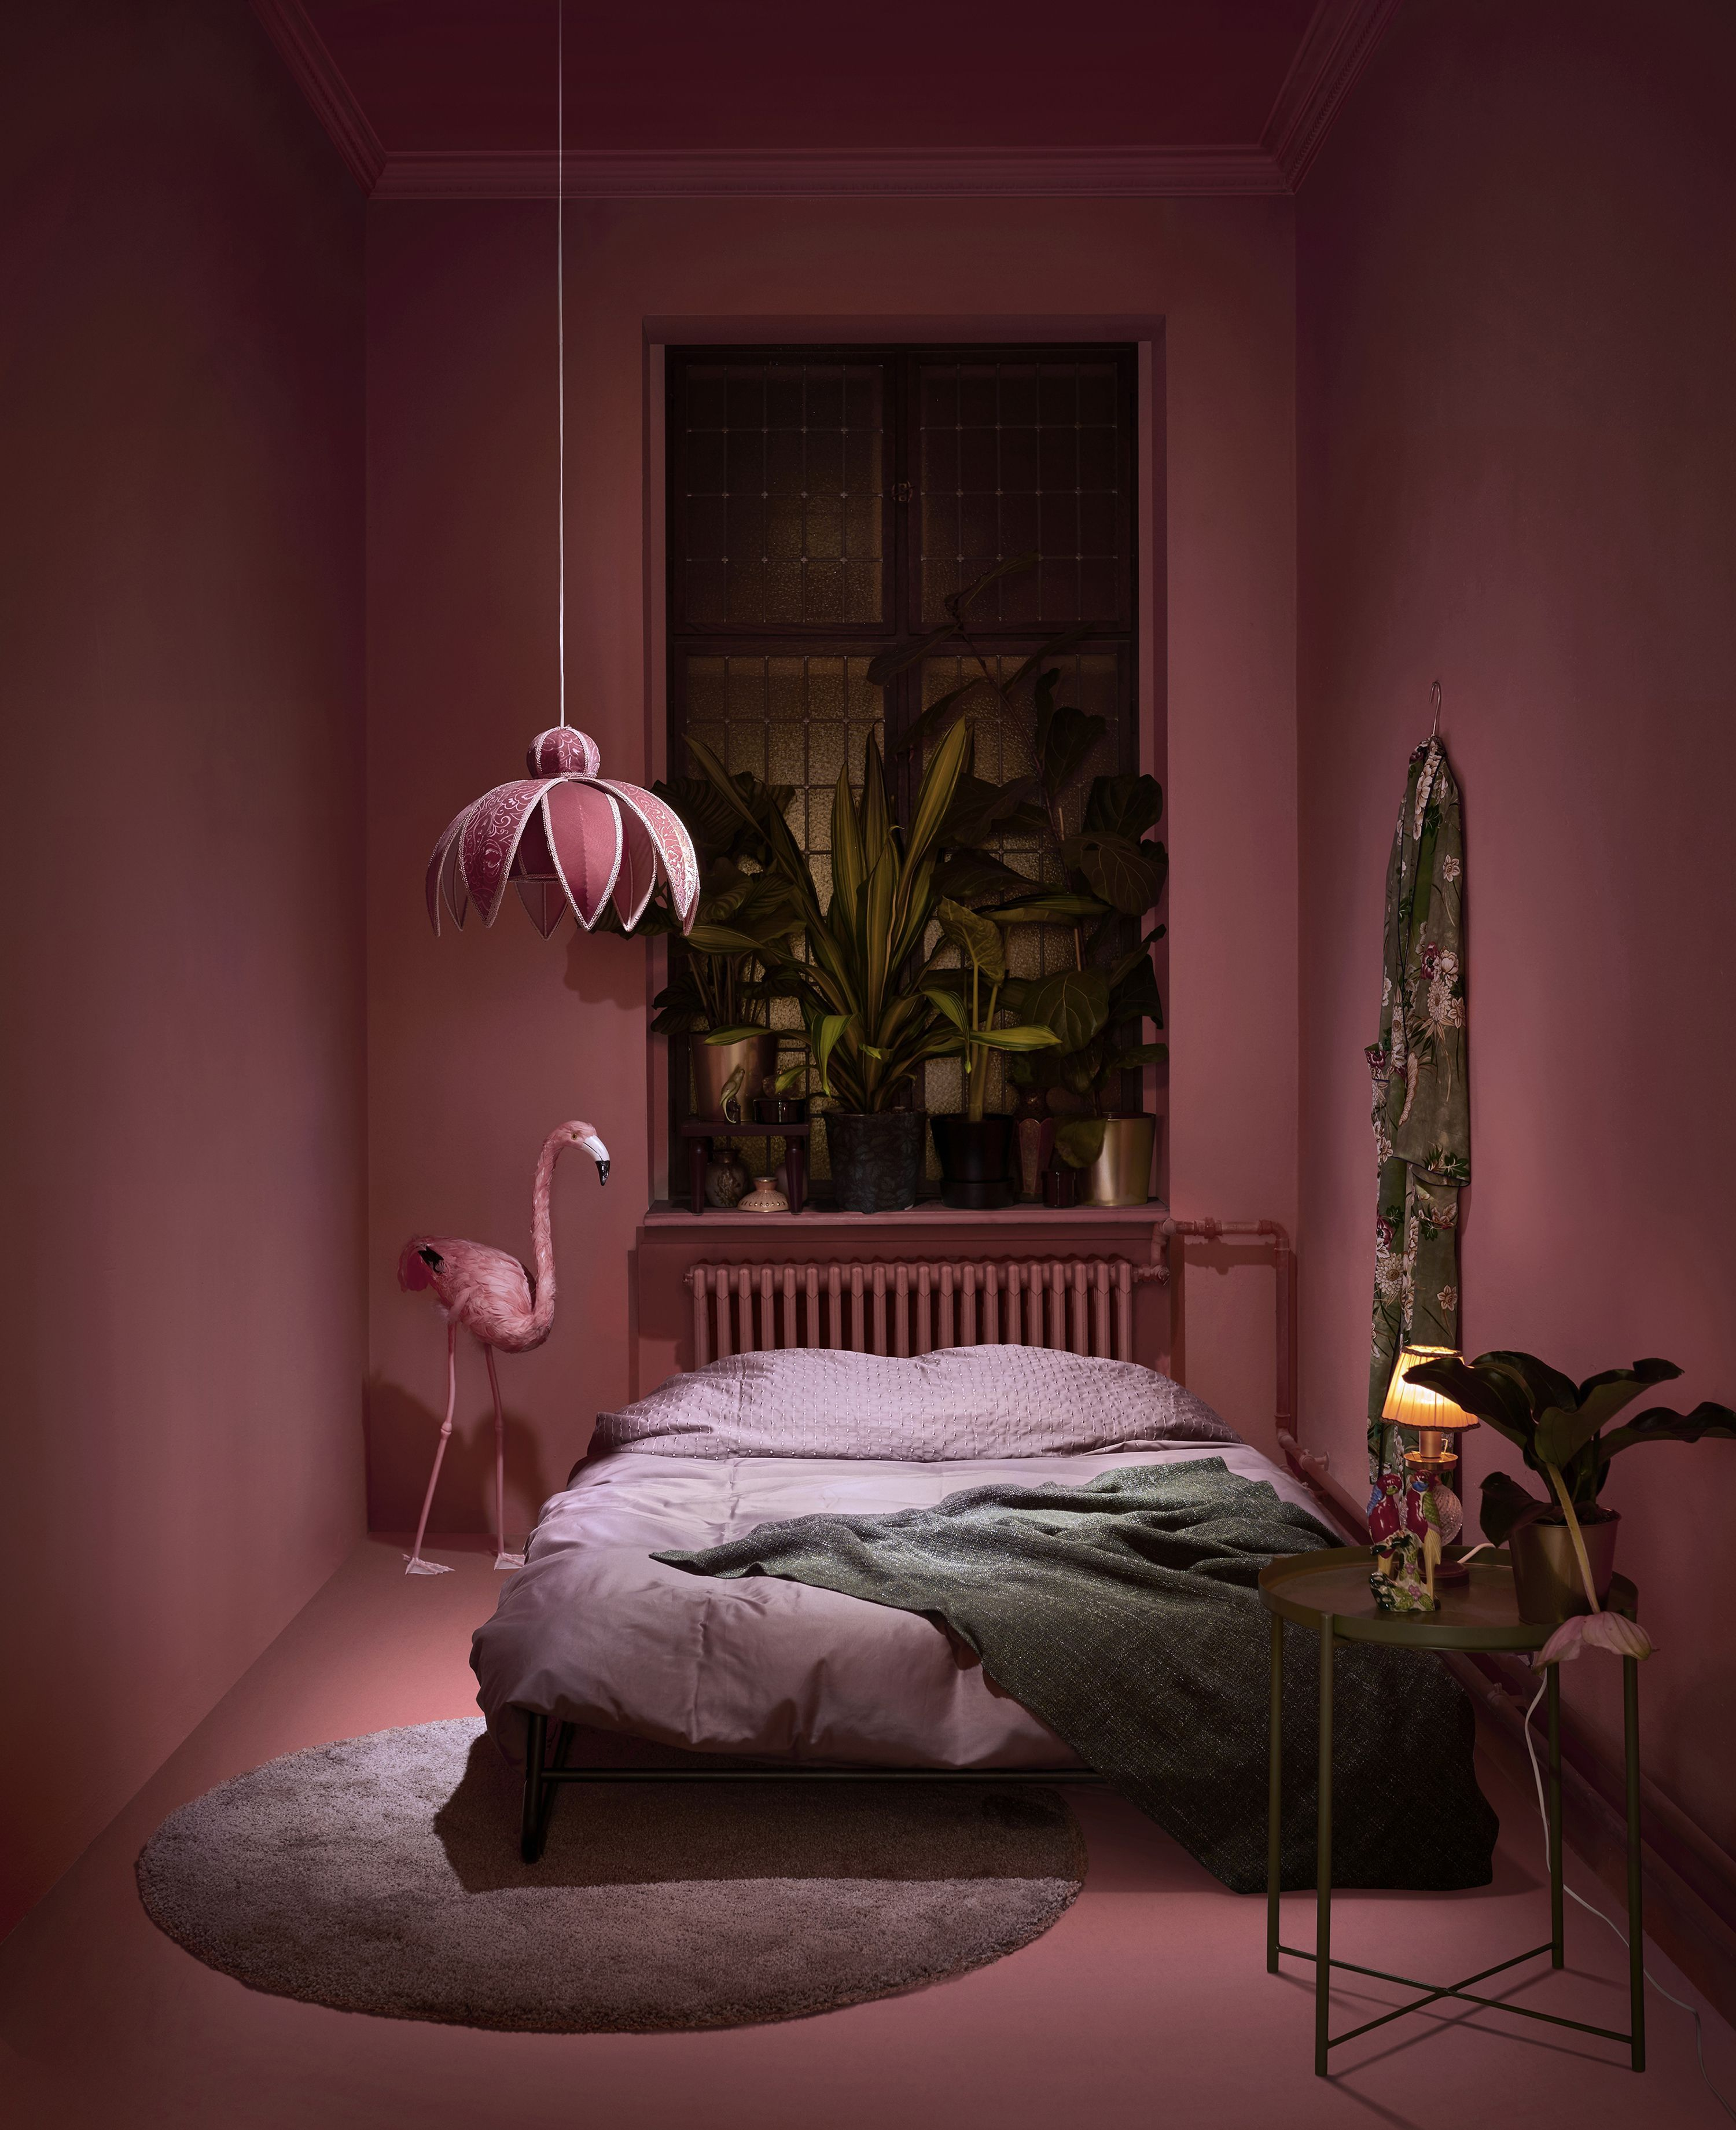 Ikea S New Products Look Way More Expensive Than They Are Decor Pink Bedroom